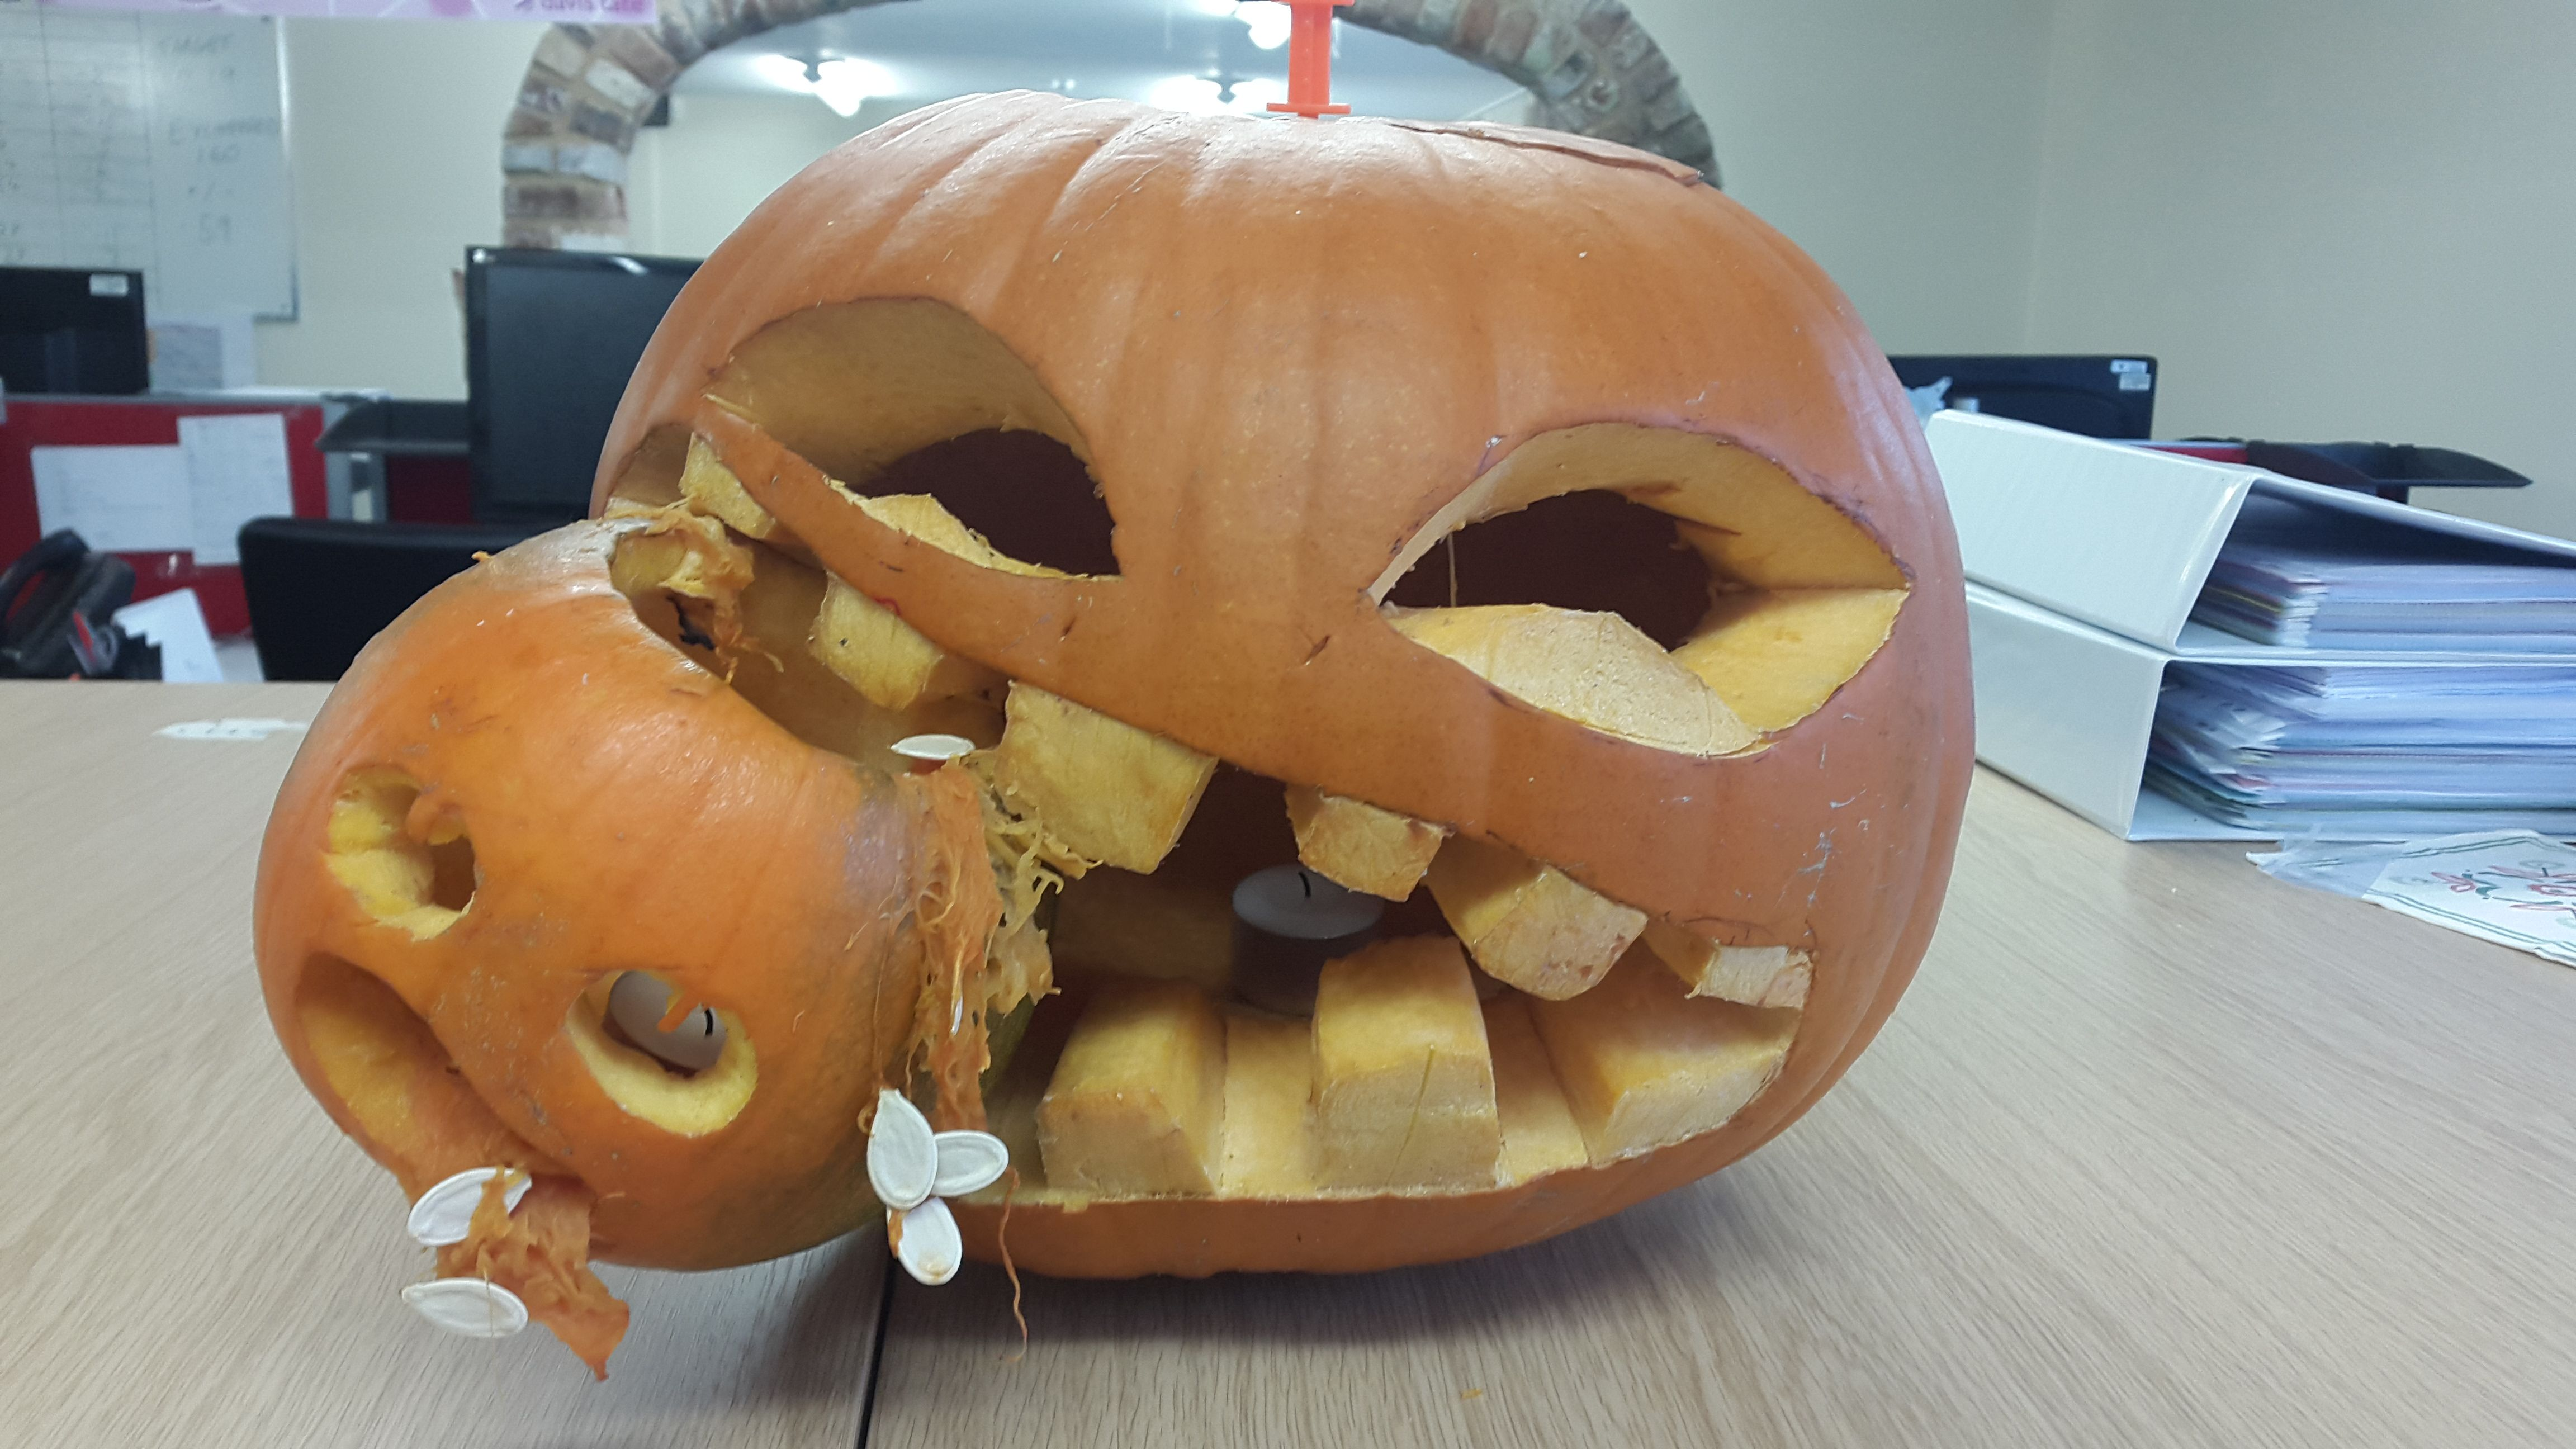 The next entry was sent in from Lucy Blockley and the team from Edgcotes. Very creative.